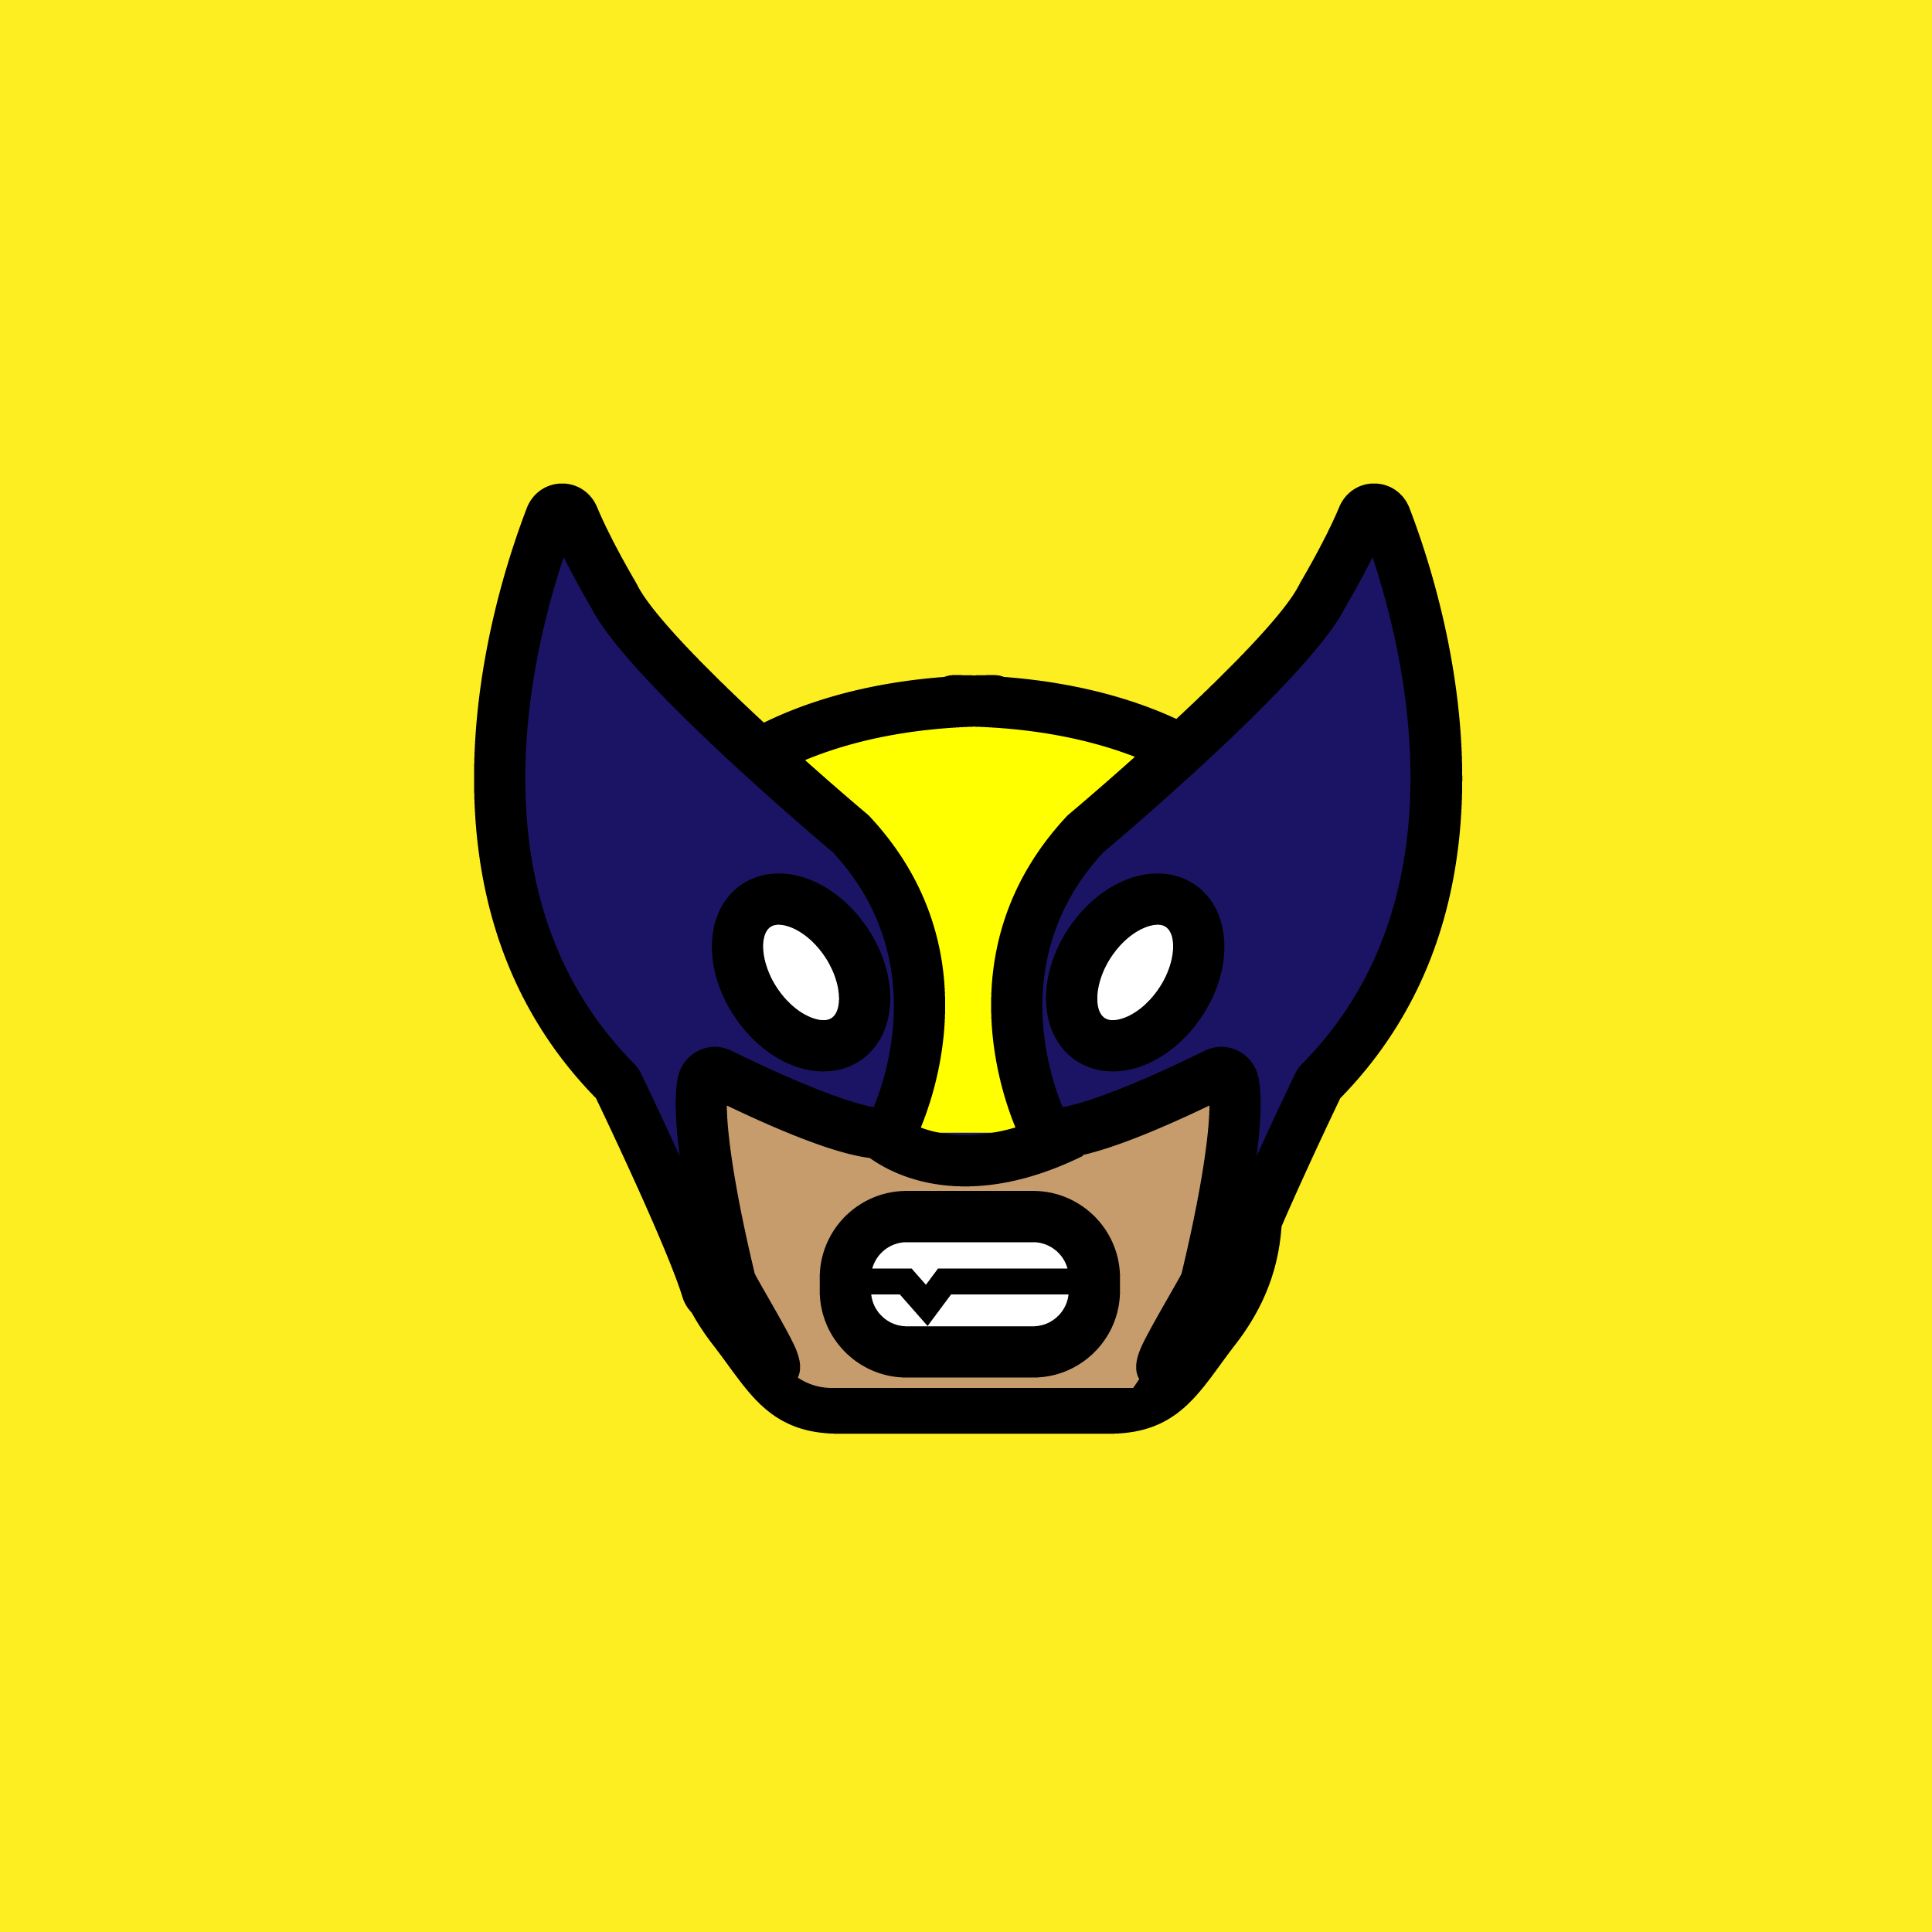 Wolverine-01.png